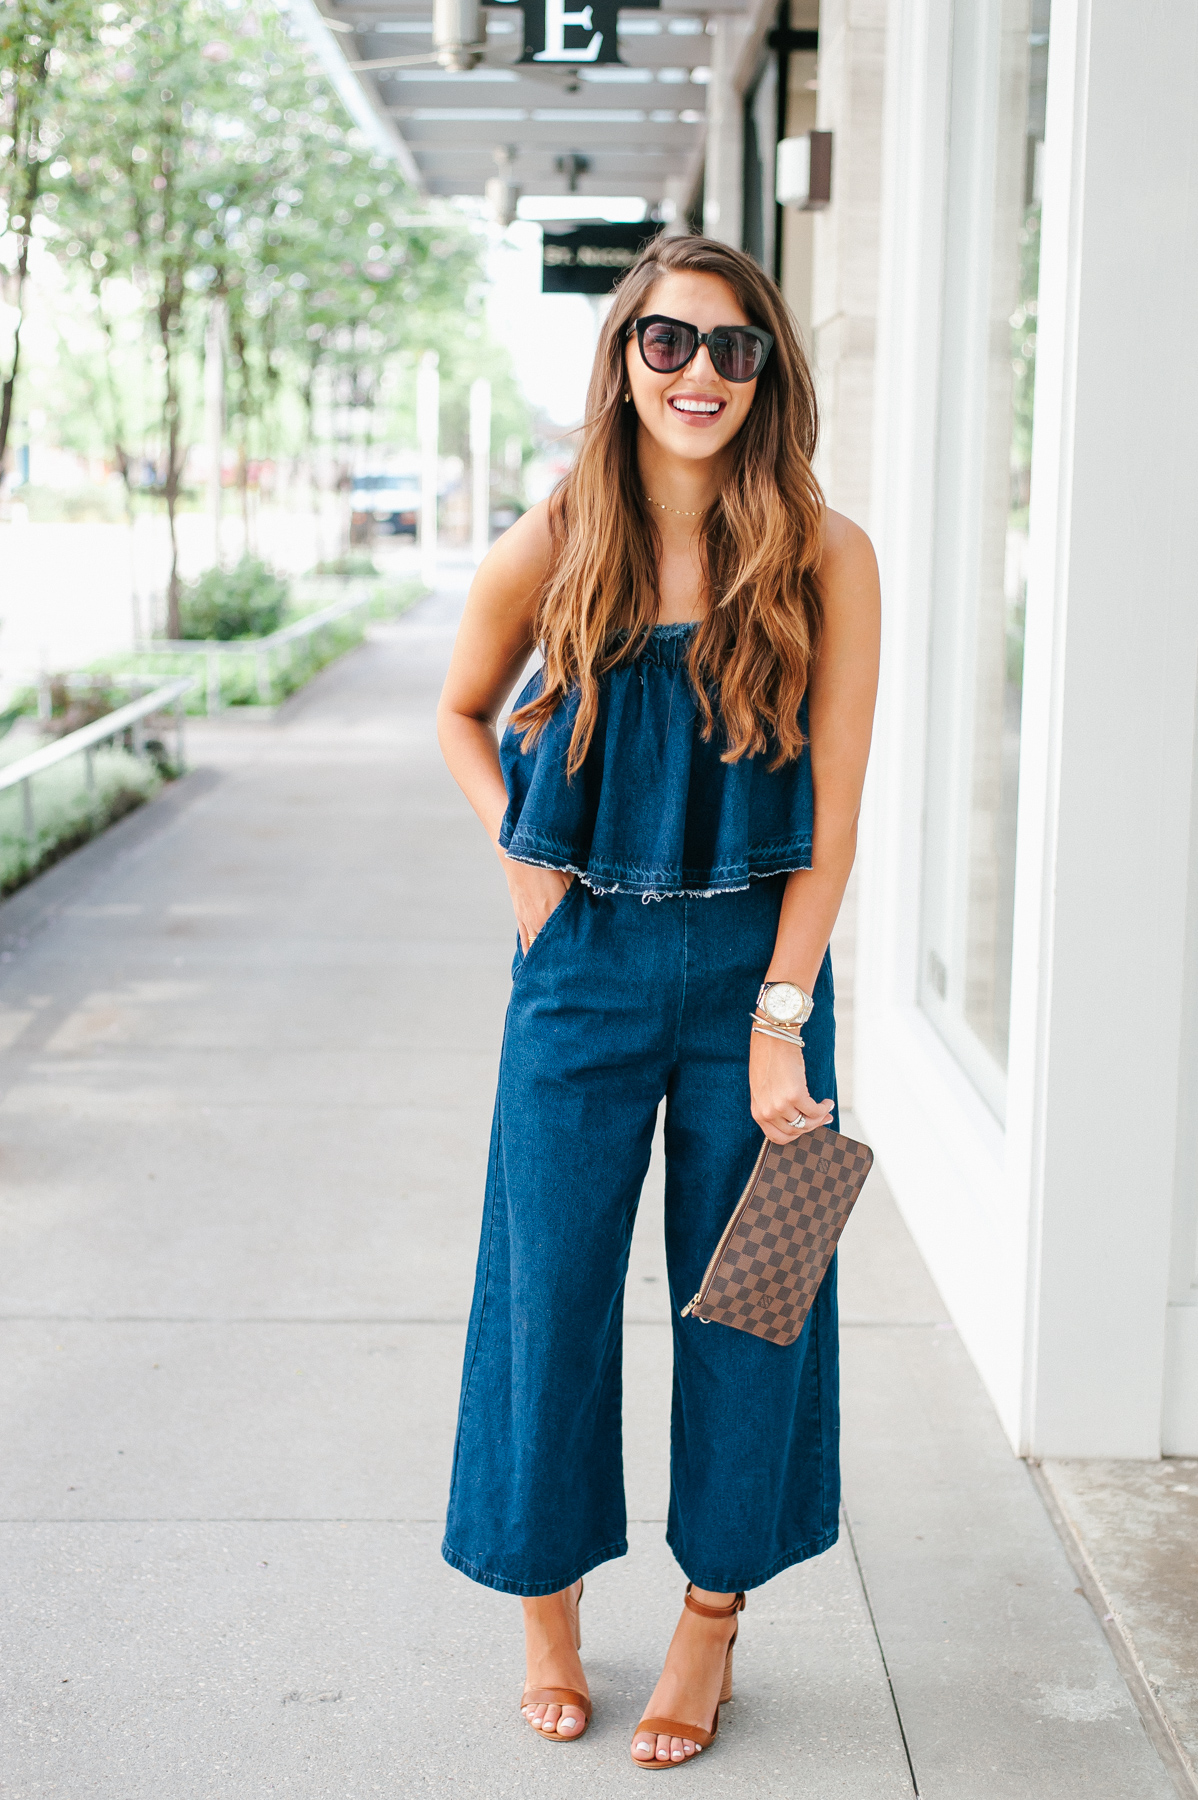 Dress Up Buttercup, Dede Raad, Houston blogger, fashion blogger, J.O.A. Strapless Crop Denim Jumpsuit, Denim Denim Jumpsuit